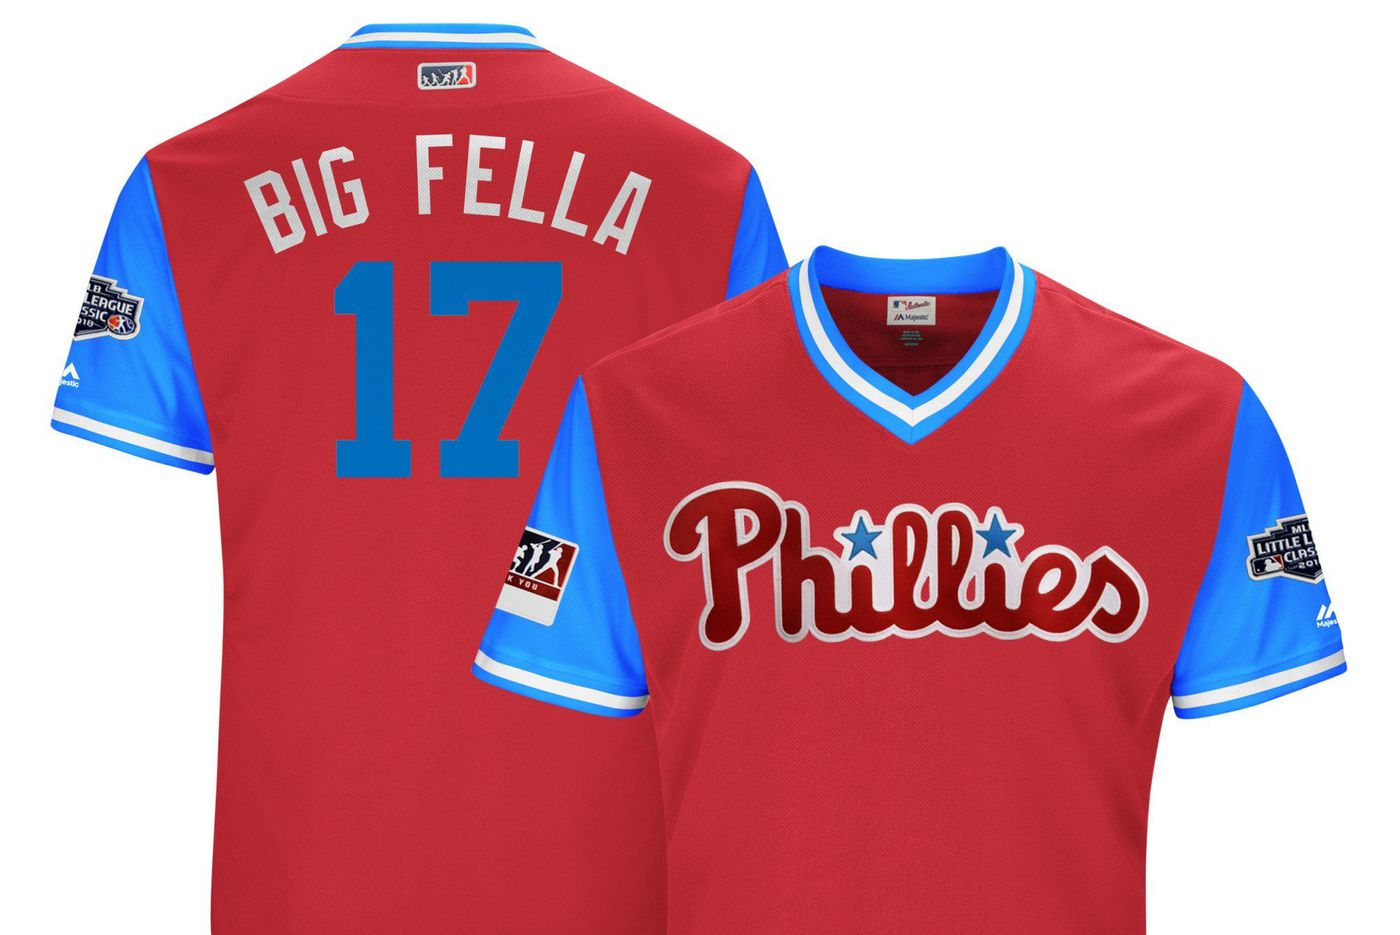 Phillies to wear nicknames on jerseys for Players Weekend: Find who's called 'Big Fudge,' 'Big Fella' and 'Bigger Fella'